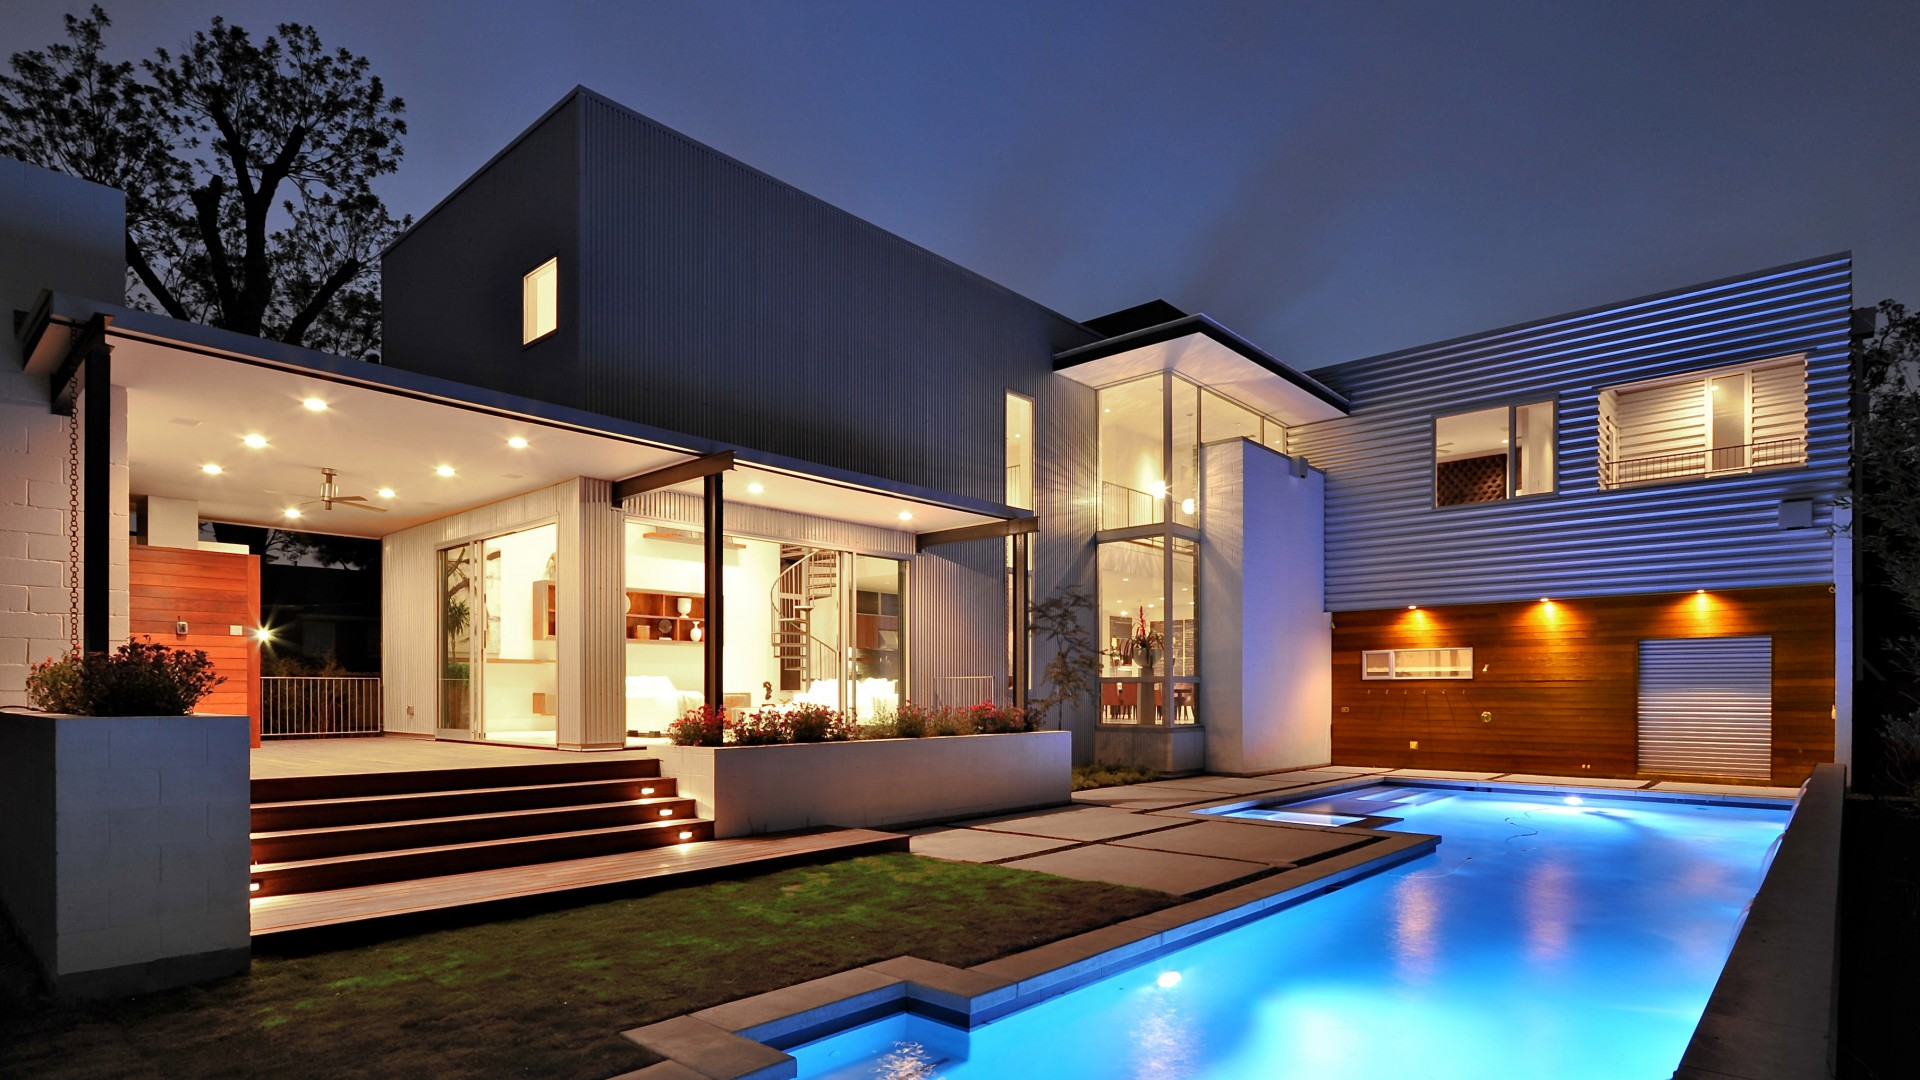 Chic rich houses with pool jpg